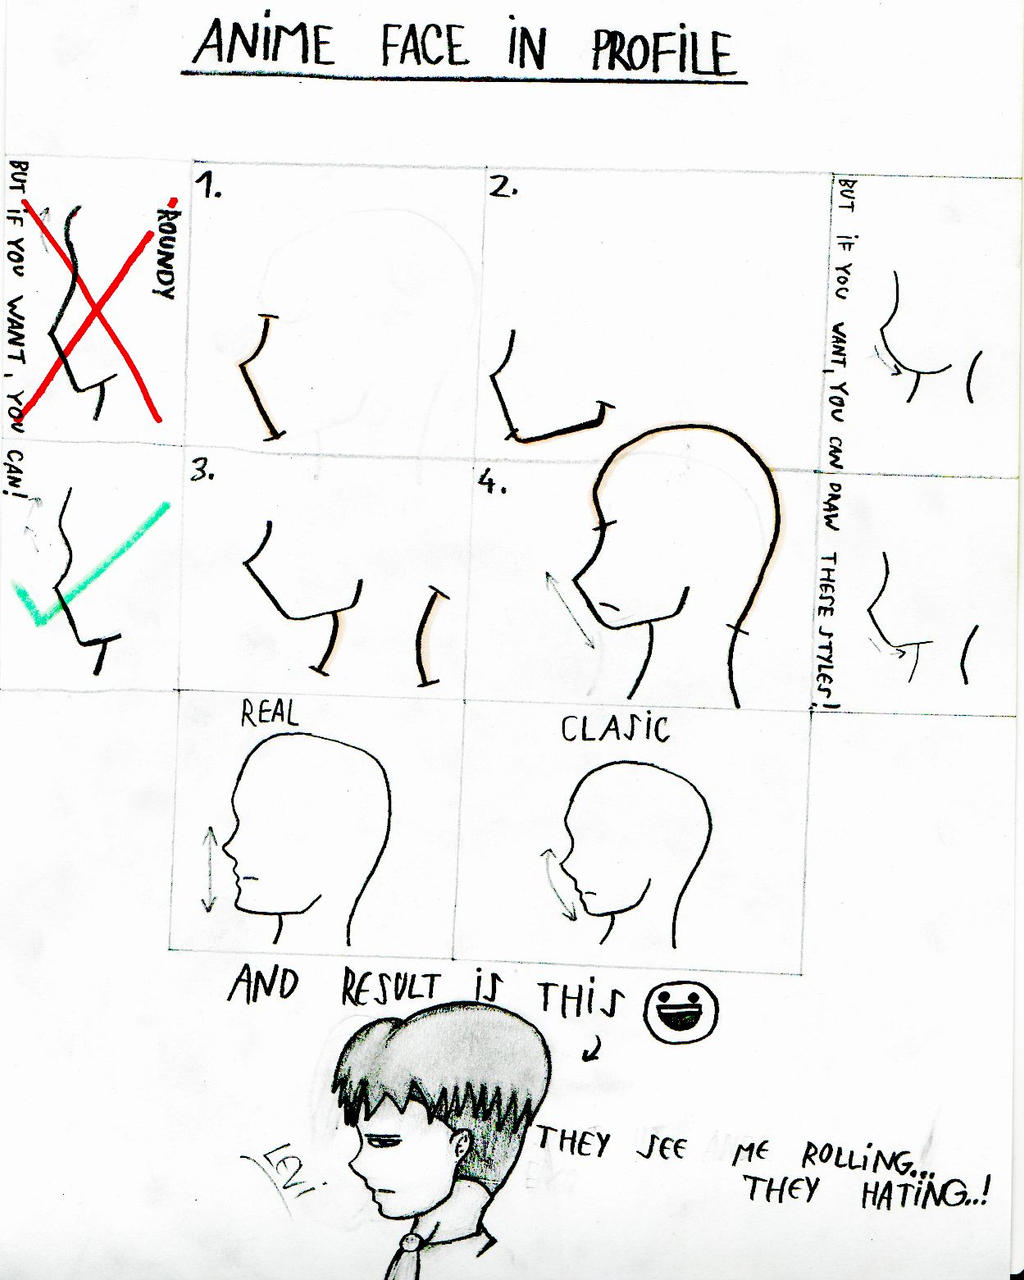 how to draw a profile face